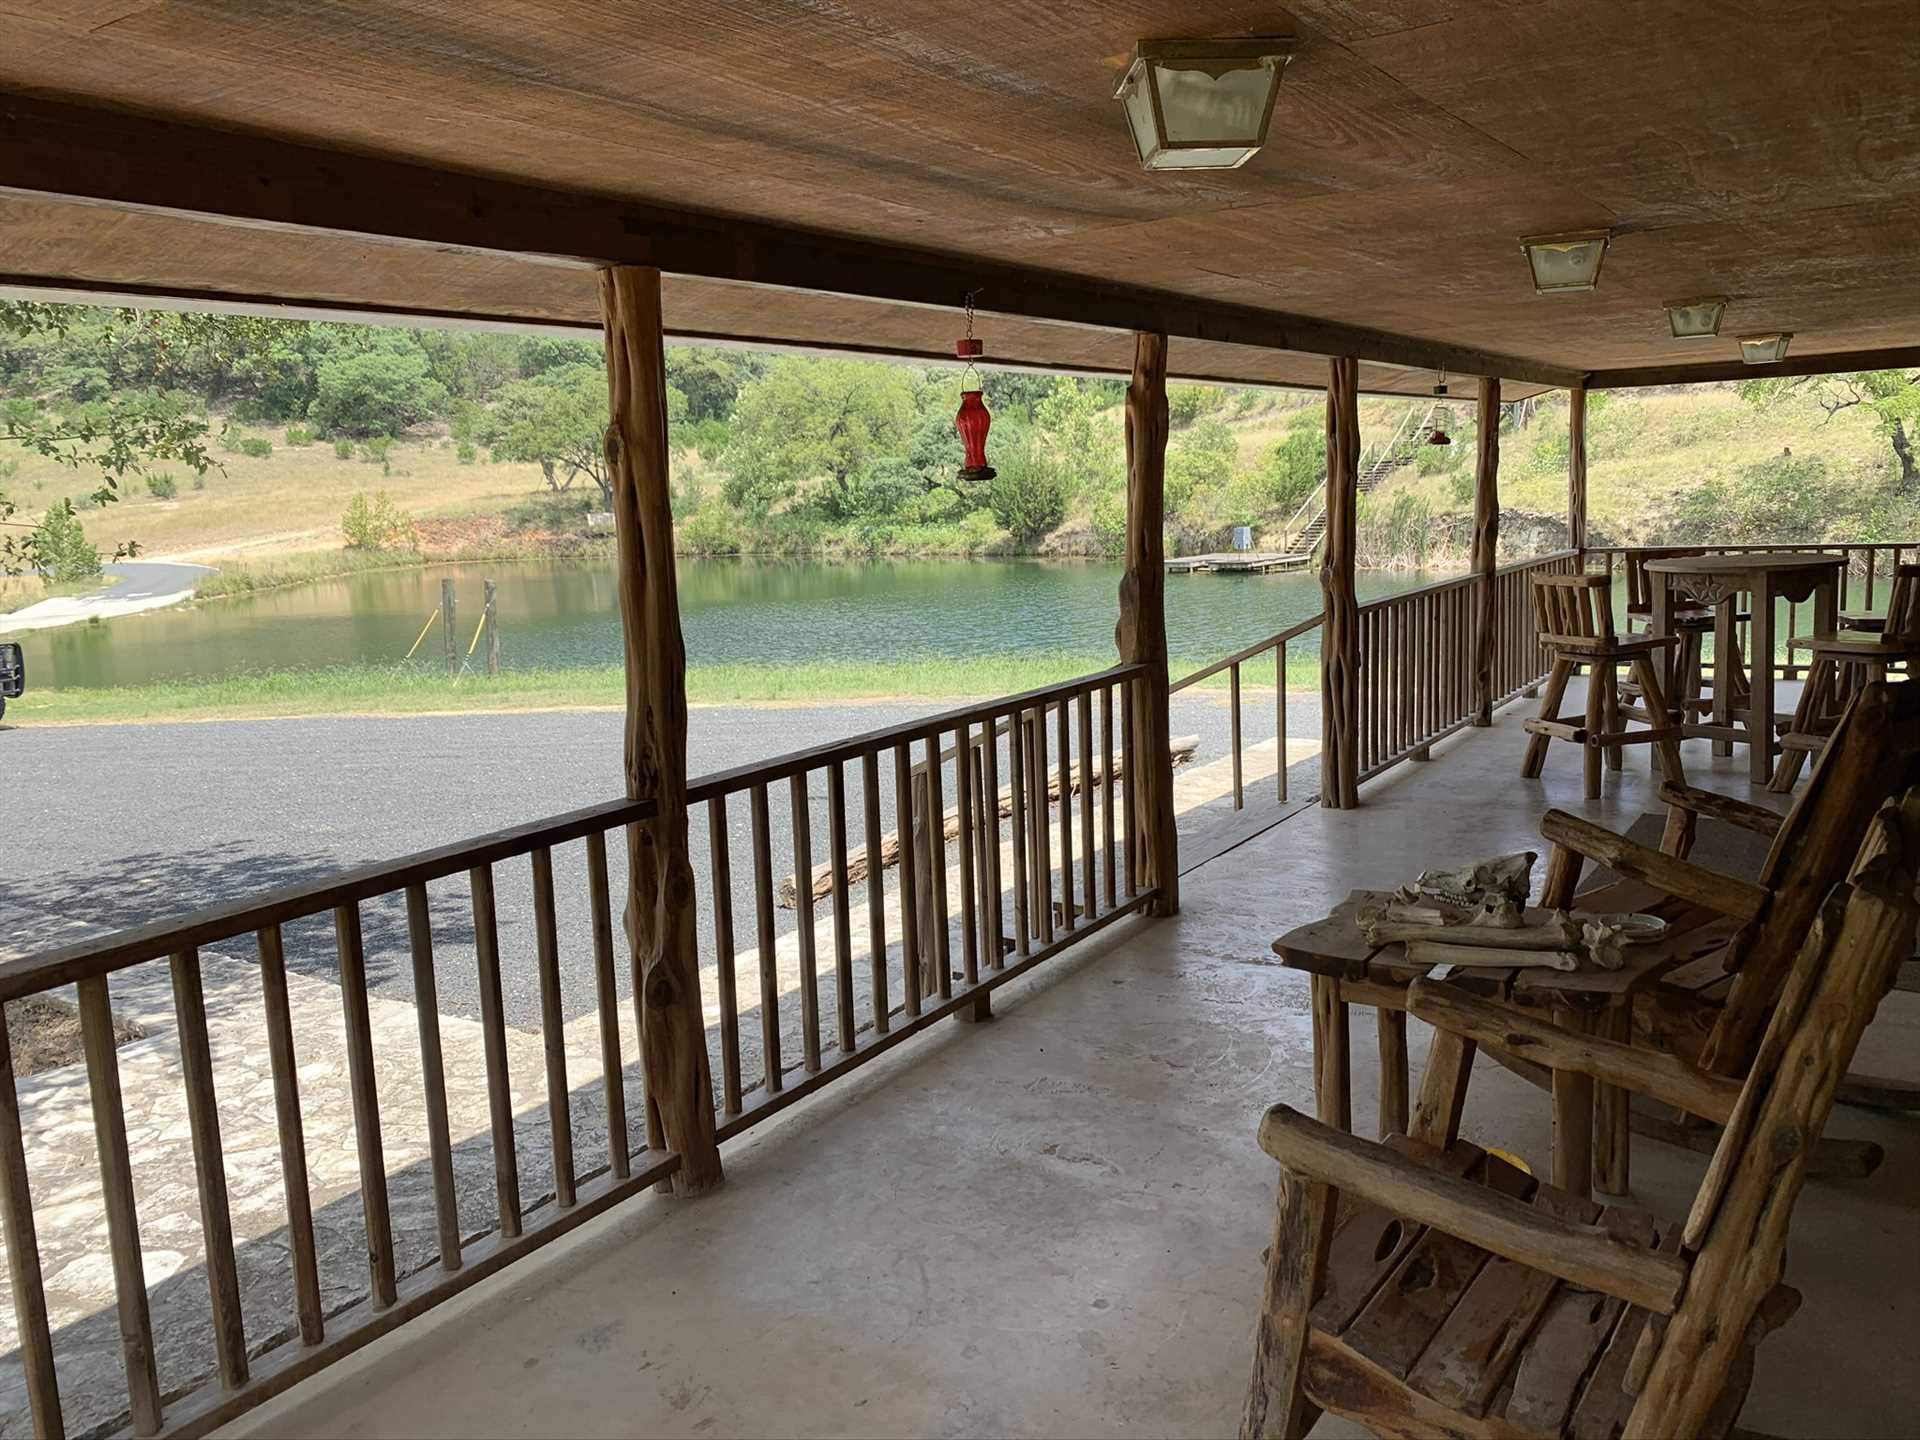 The shaded patio serves up stunning views of the waterfront, and bird feeders help bring the natural beauty to you!